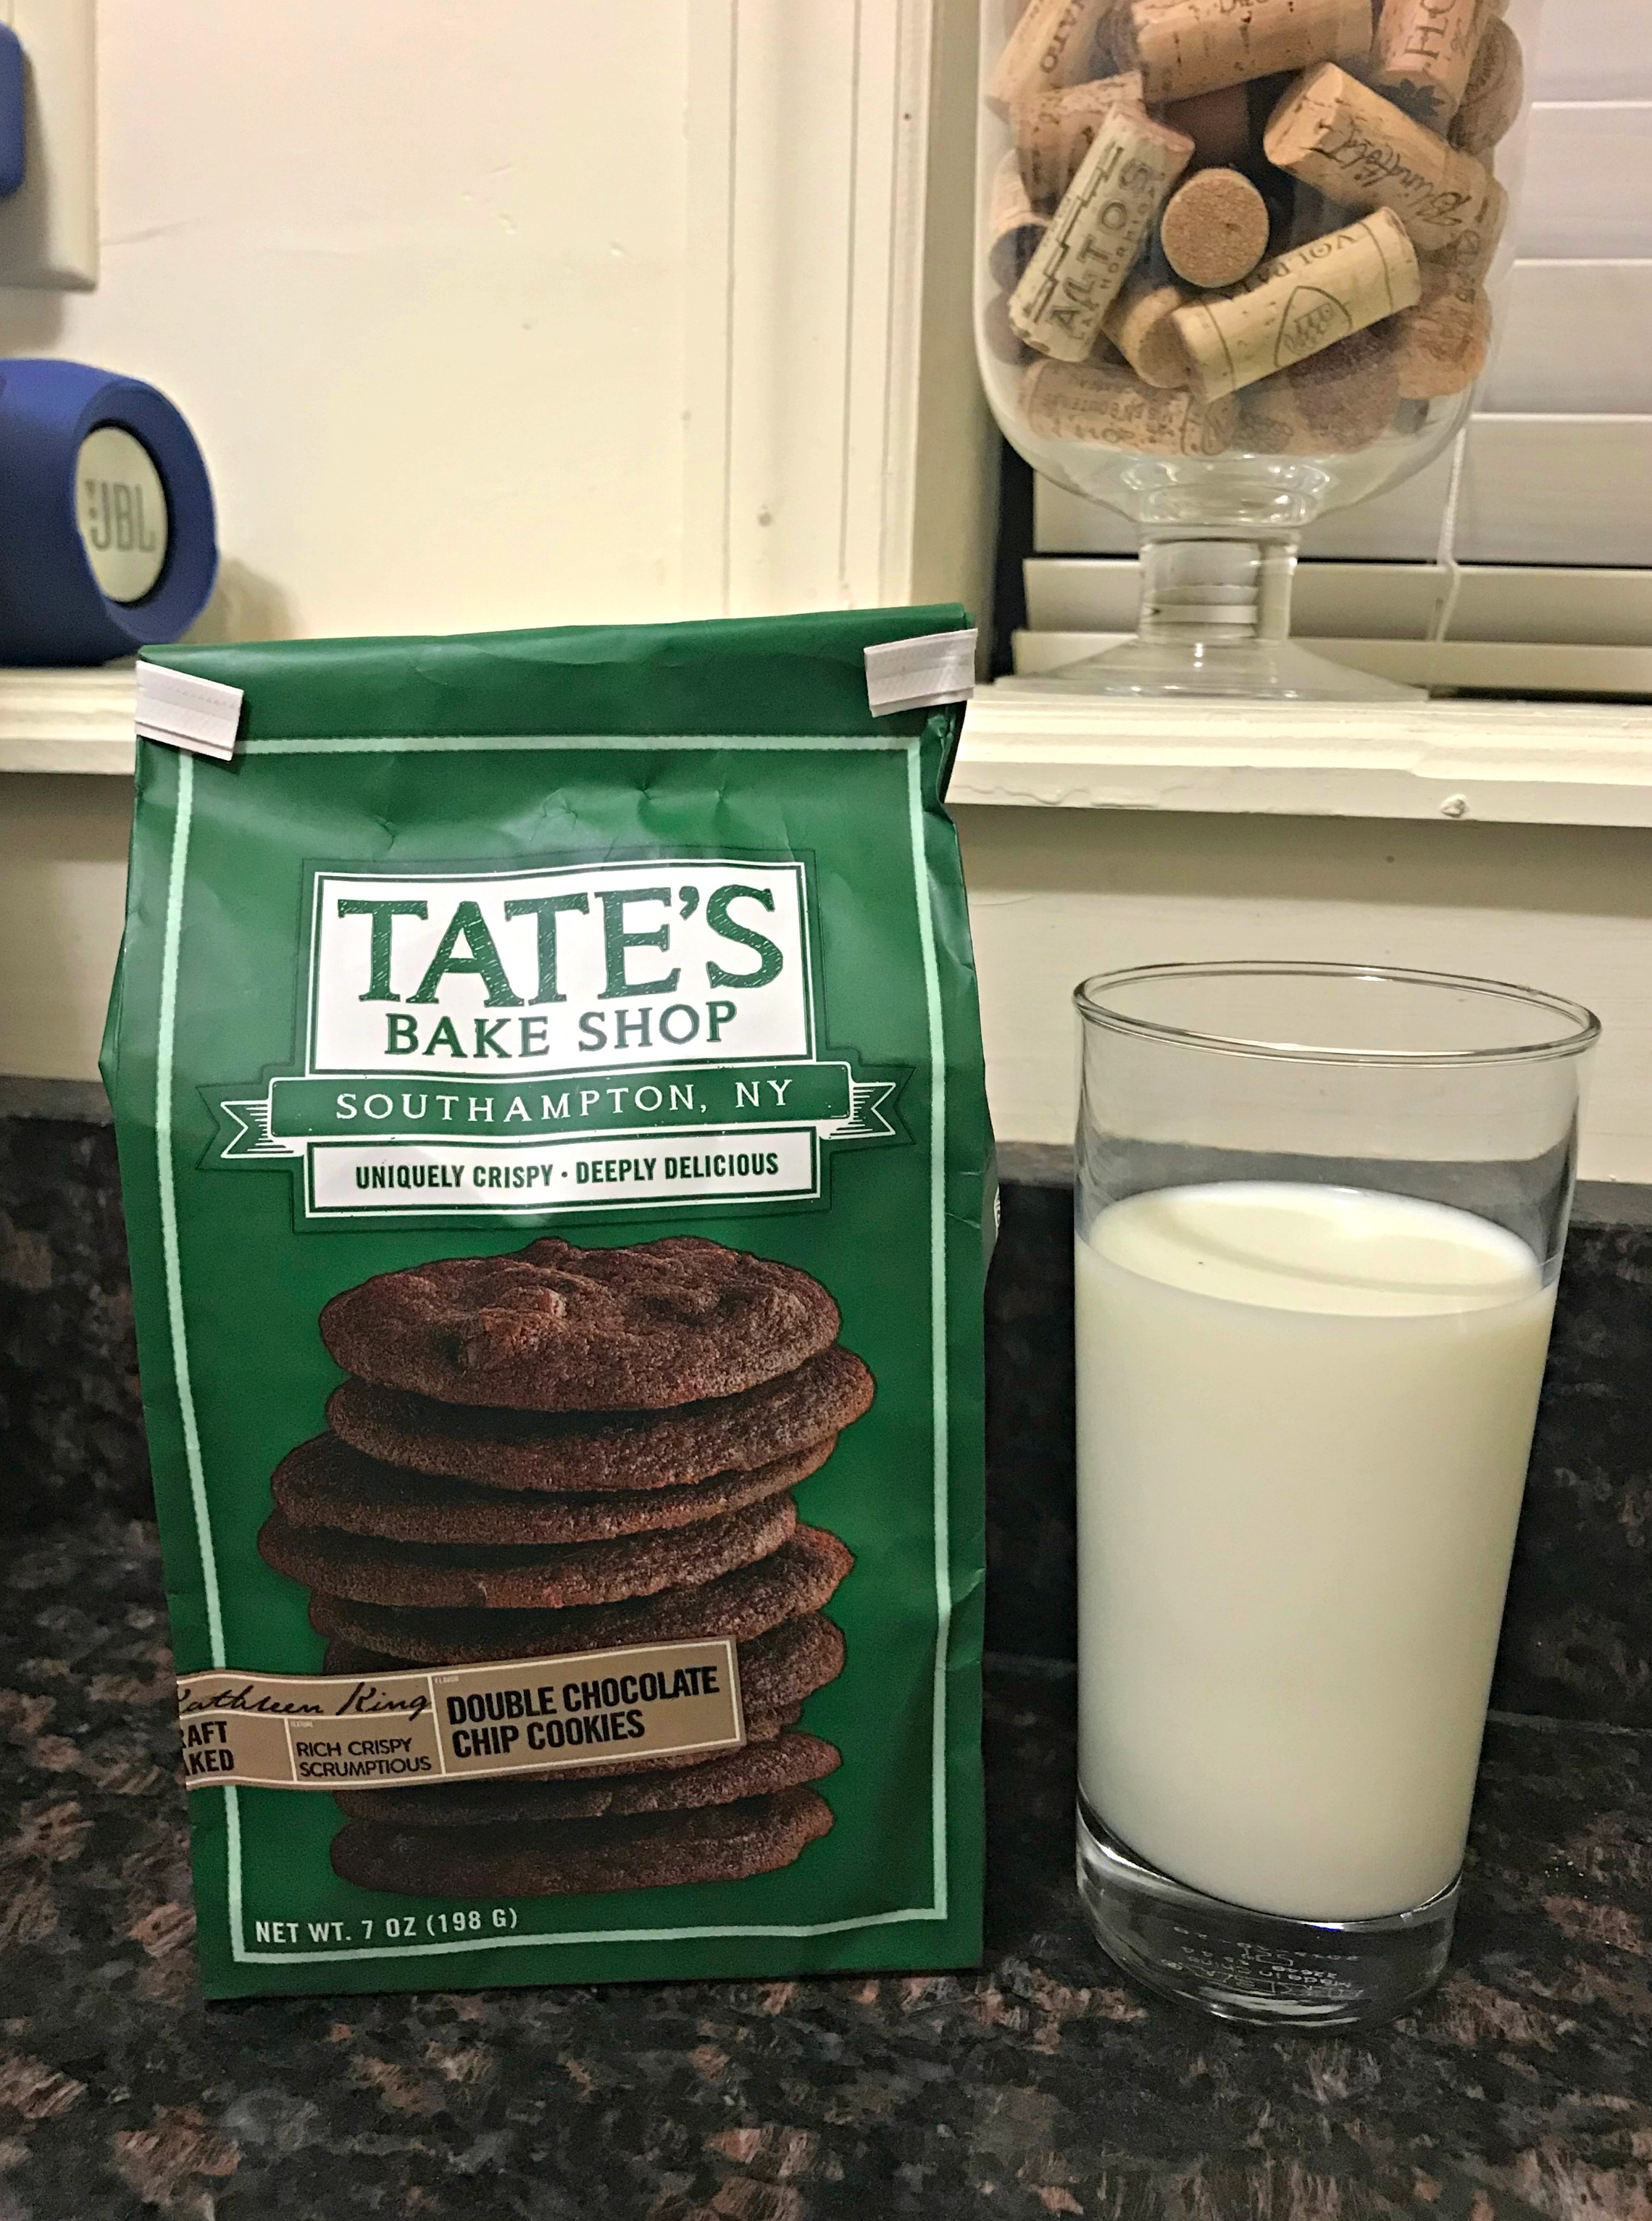 tate's bake shop cookies and milk